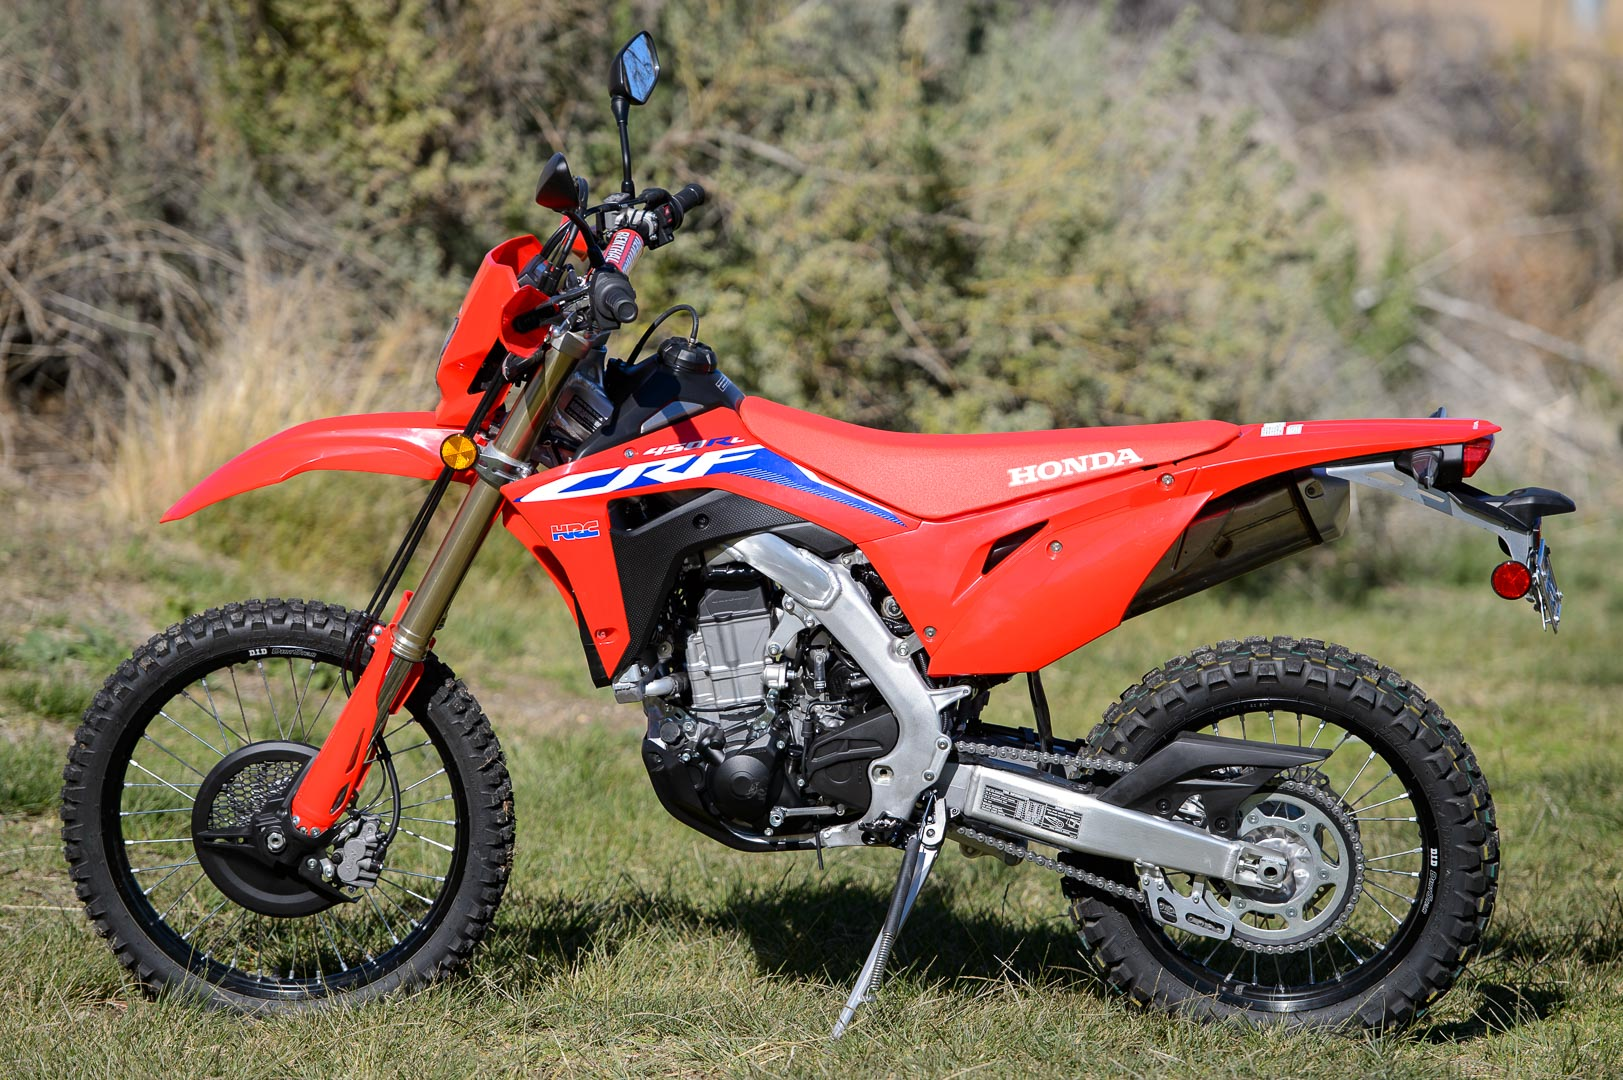 2021 Honda CRF450RL Review: Dual-Sport Motorcycle Test